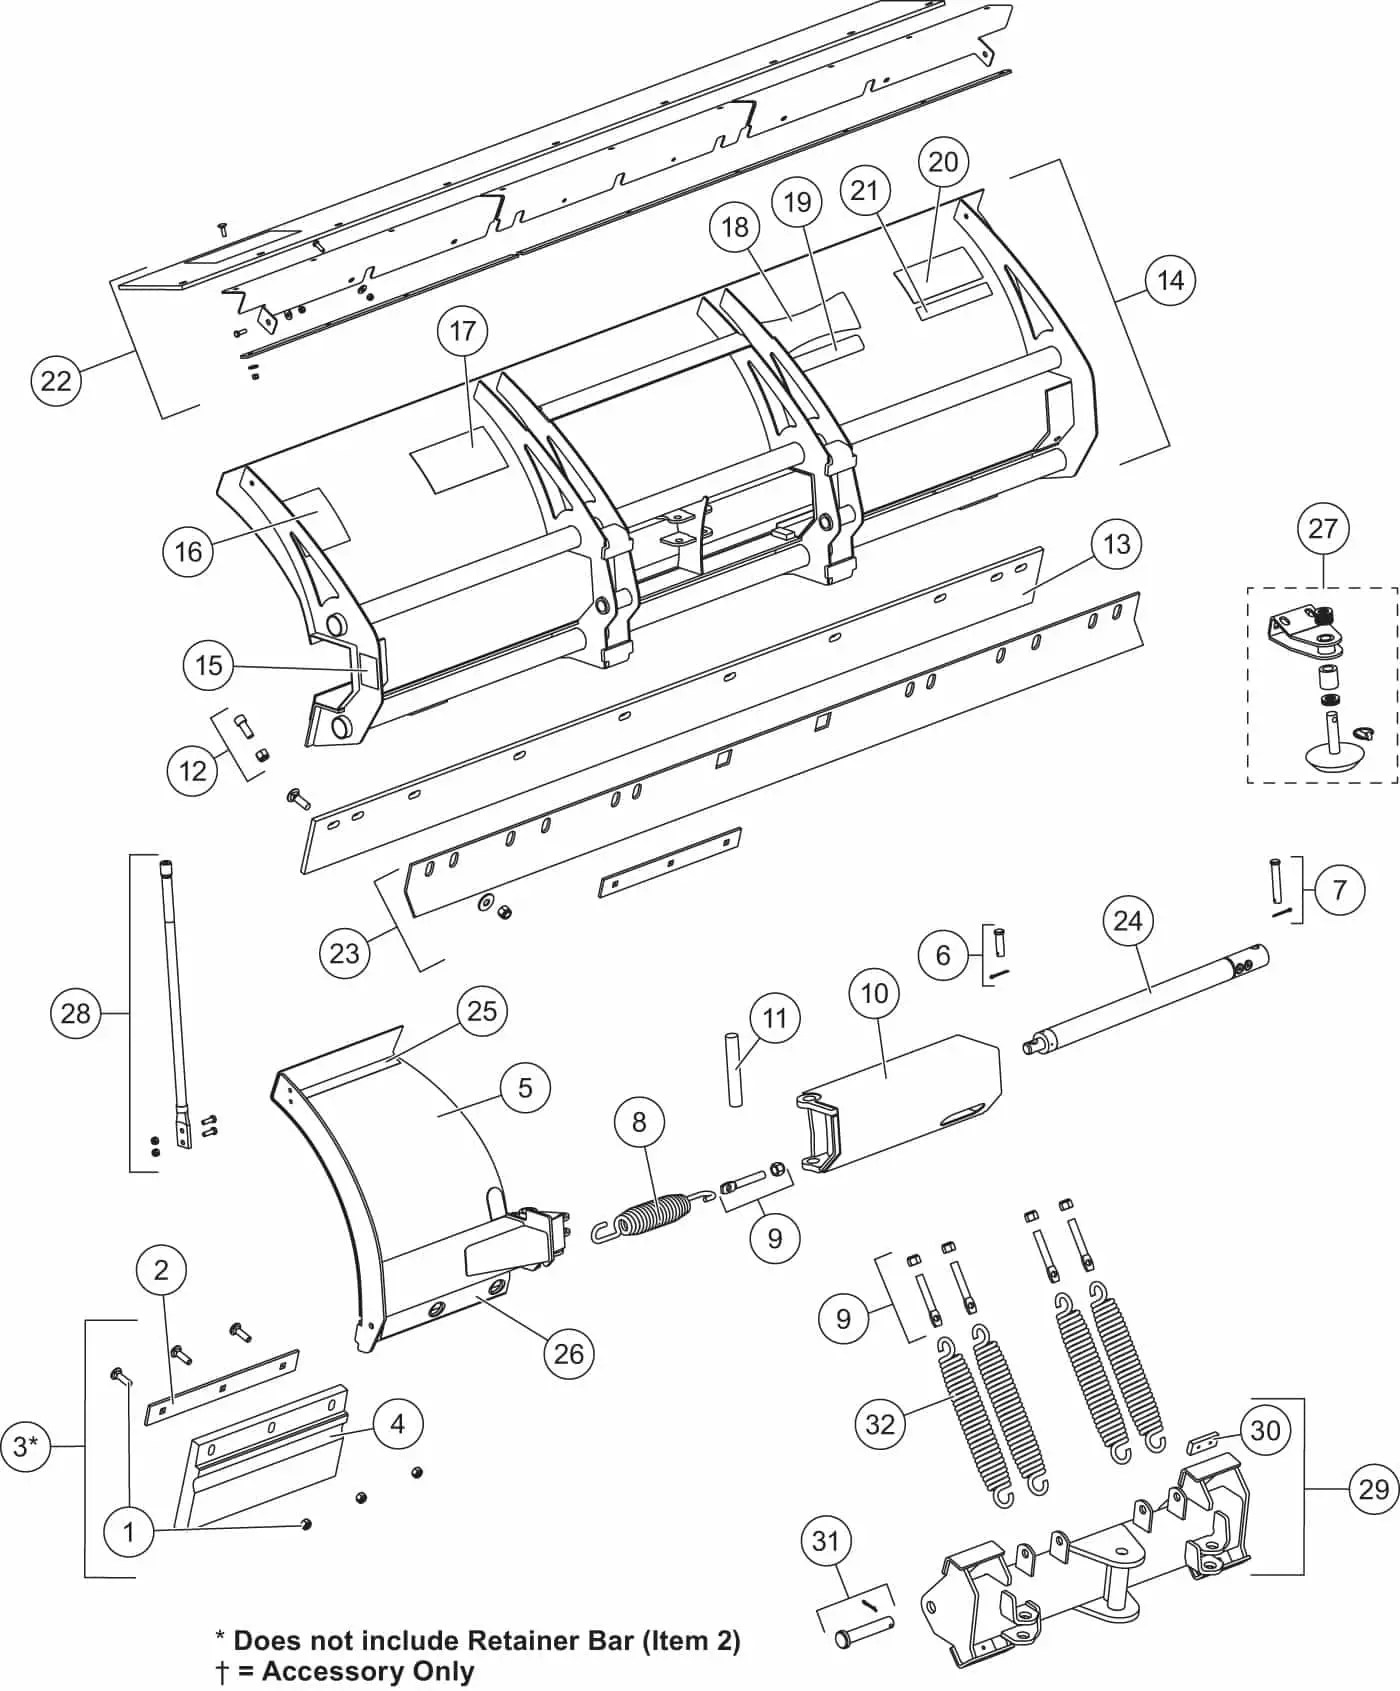 western snow plow parts diagram of water purification process ultramount wide out blade quadrant